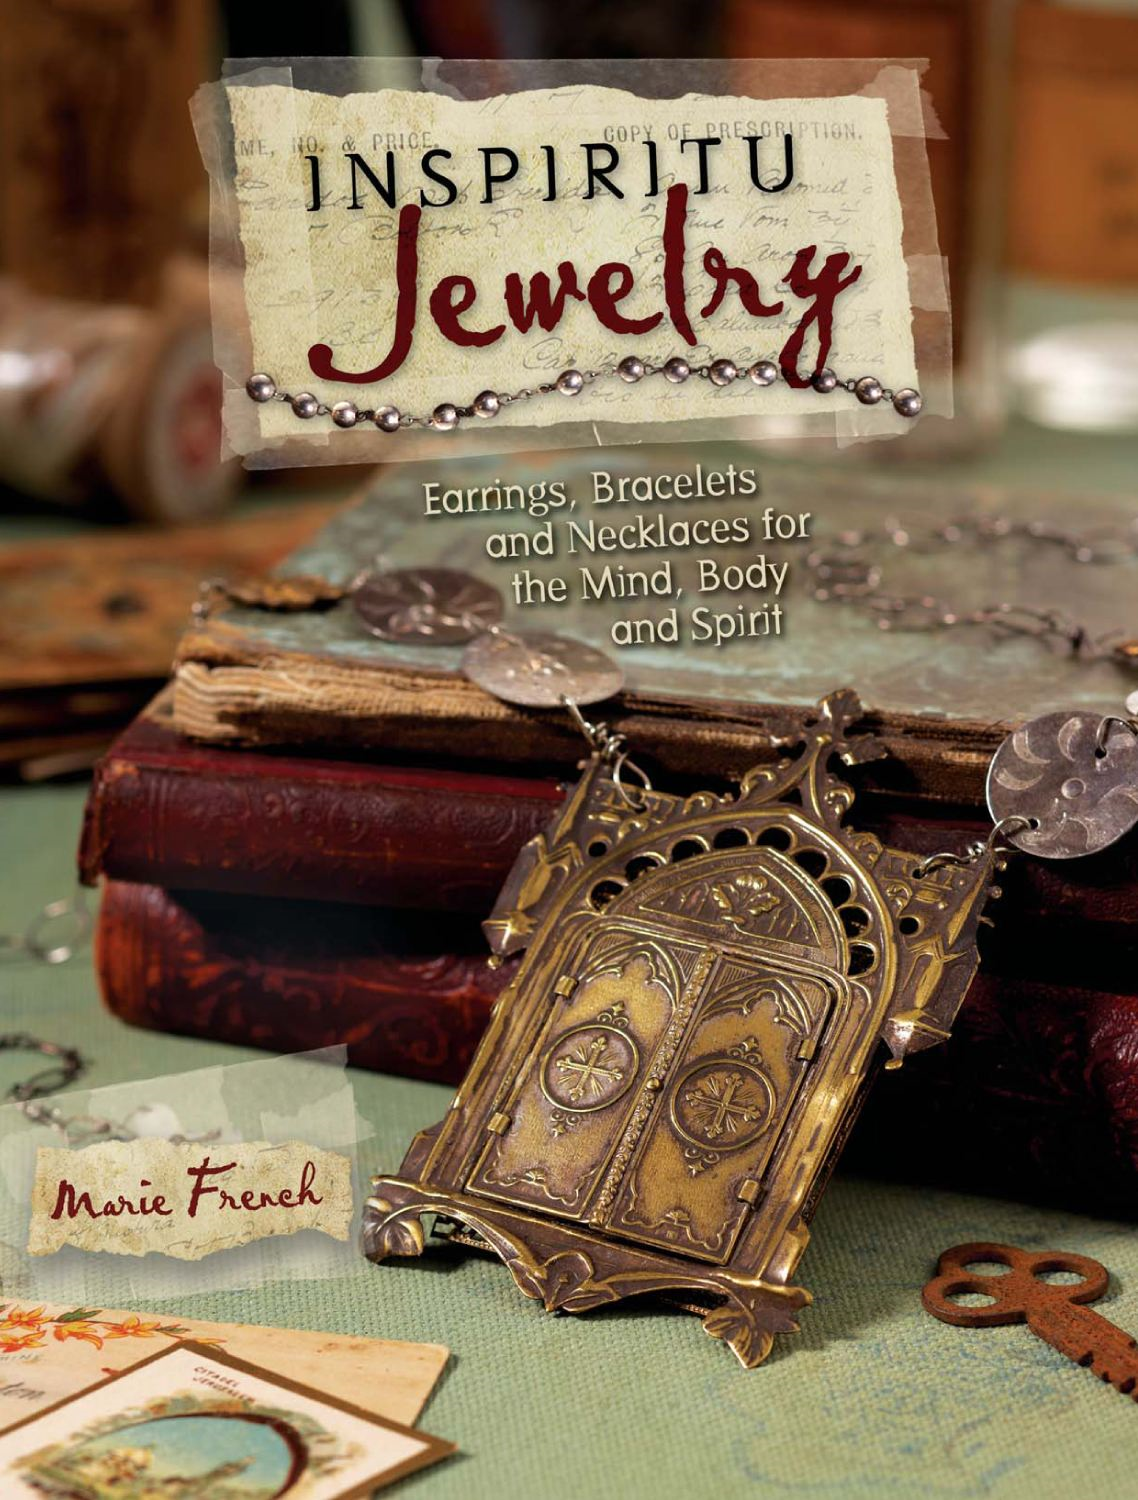 Inspiritu Jewelry: Earrings, Bracelets and Necklaces for the Mind, Body and Spirit